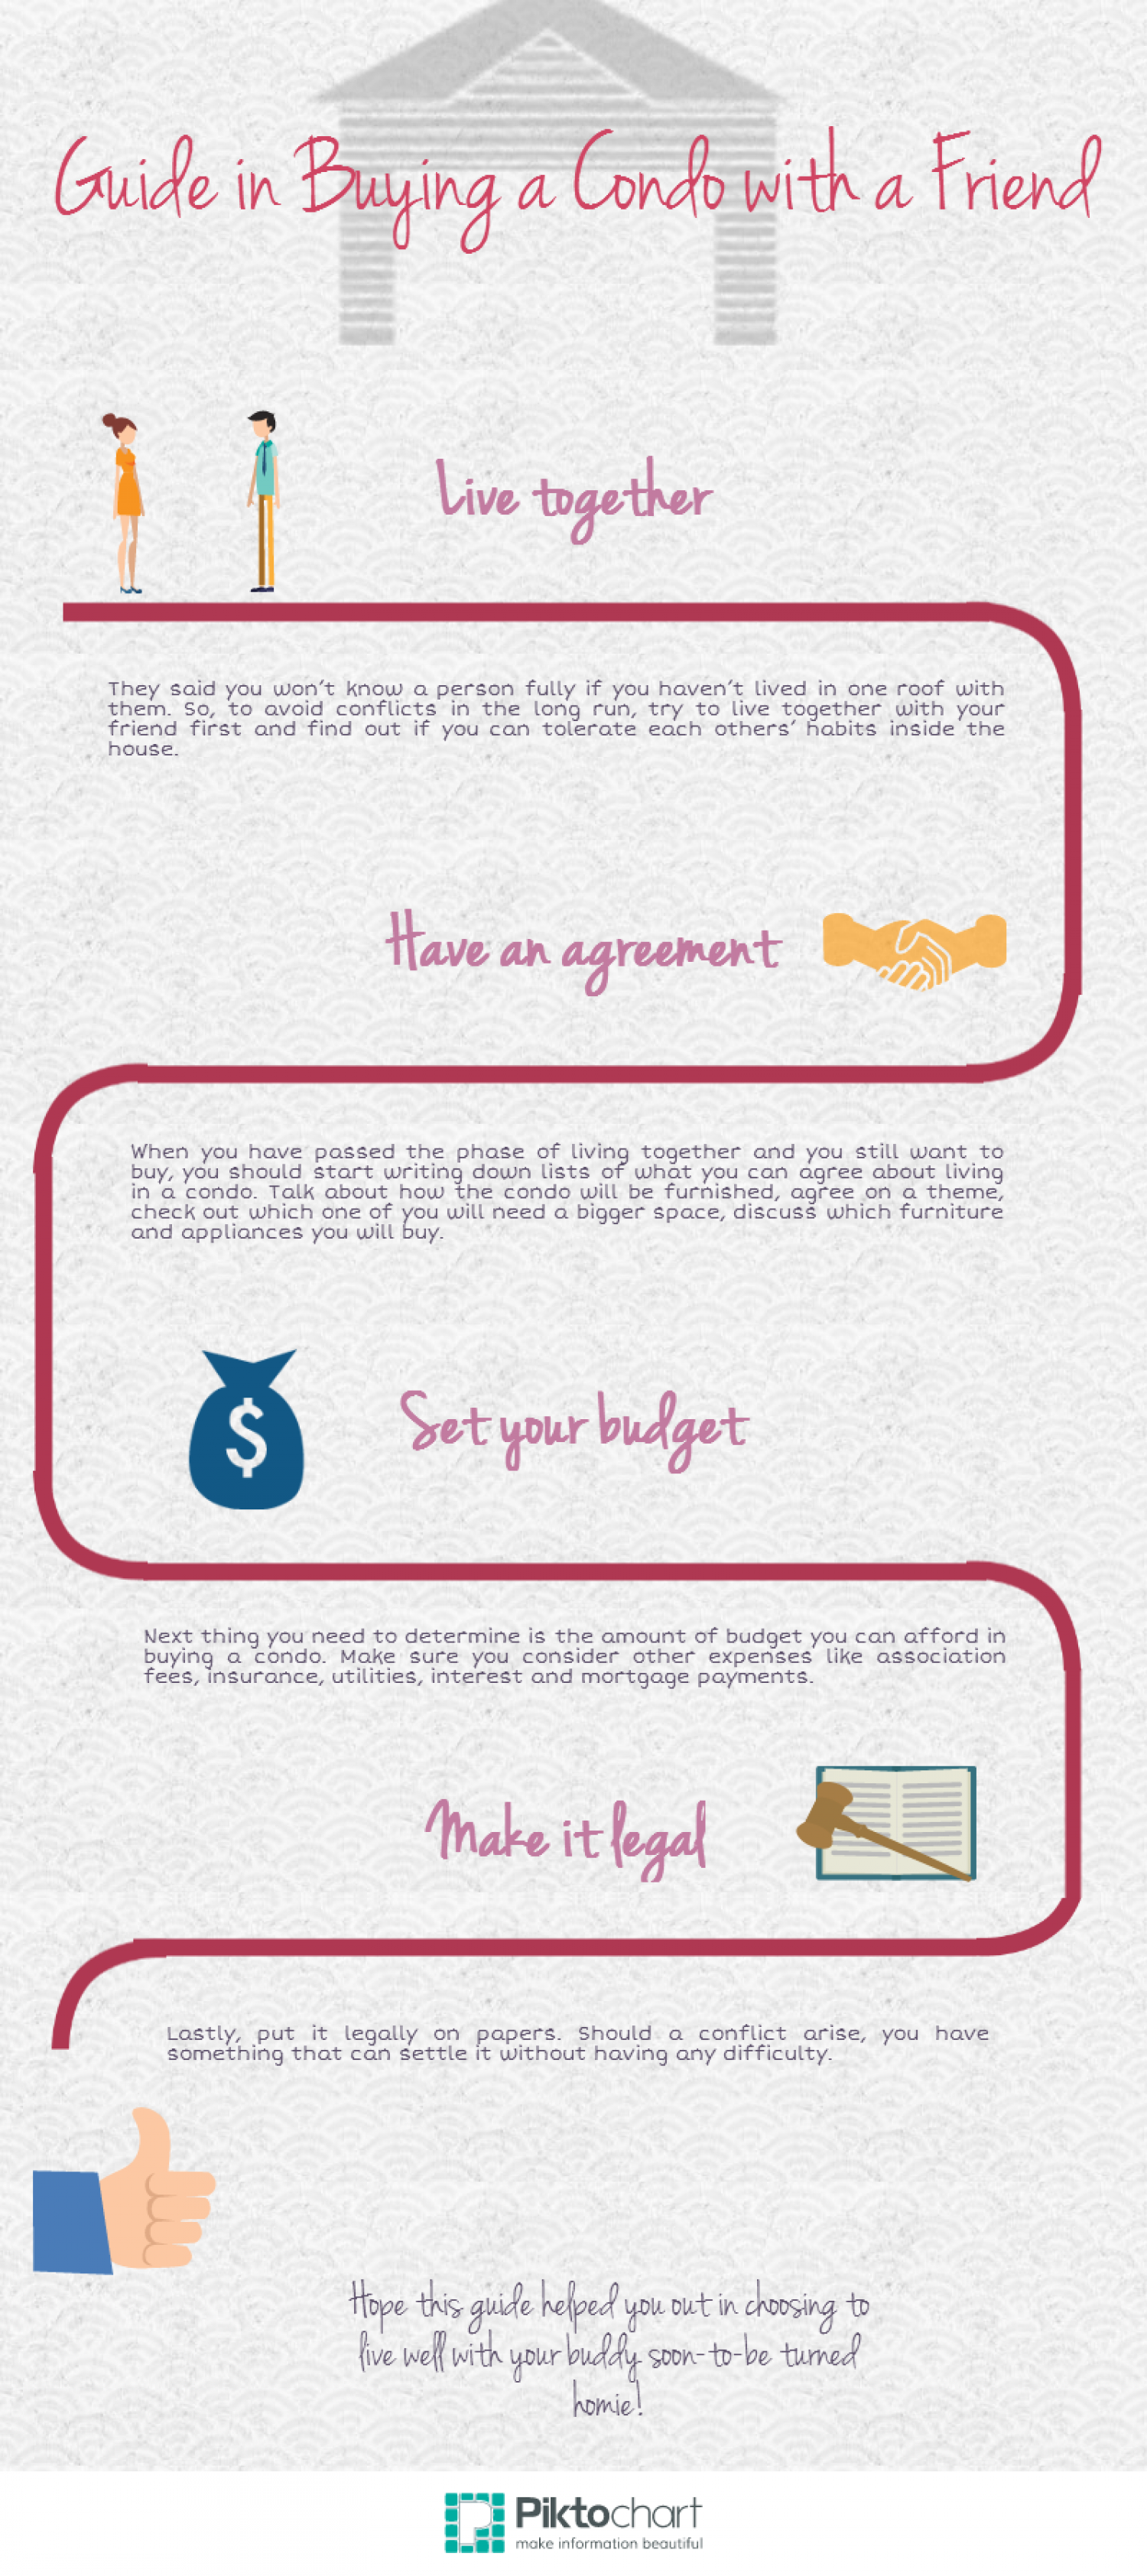 Guide in Buying a Condo with a Friend Infographic